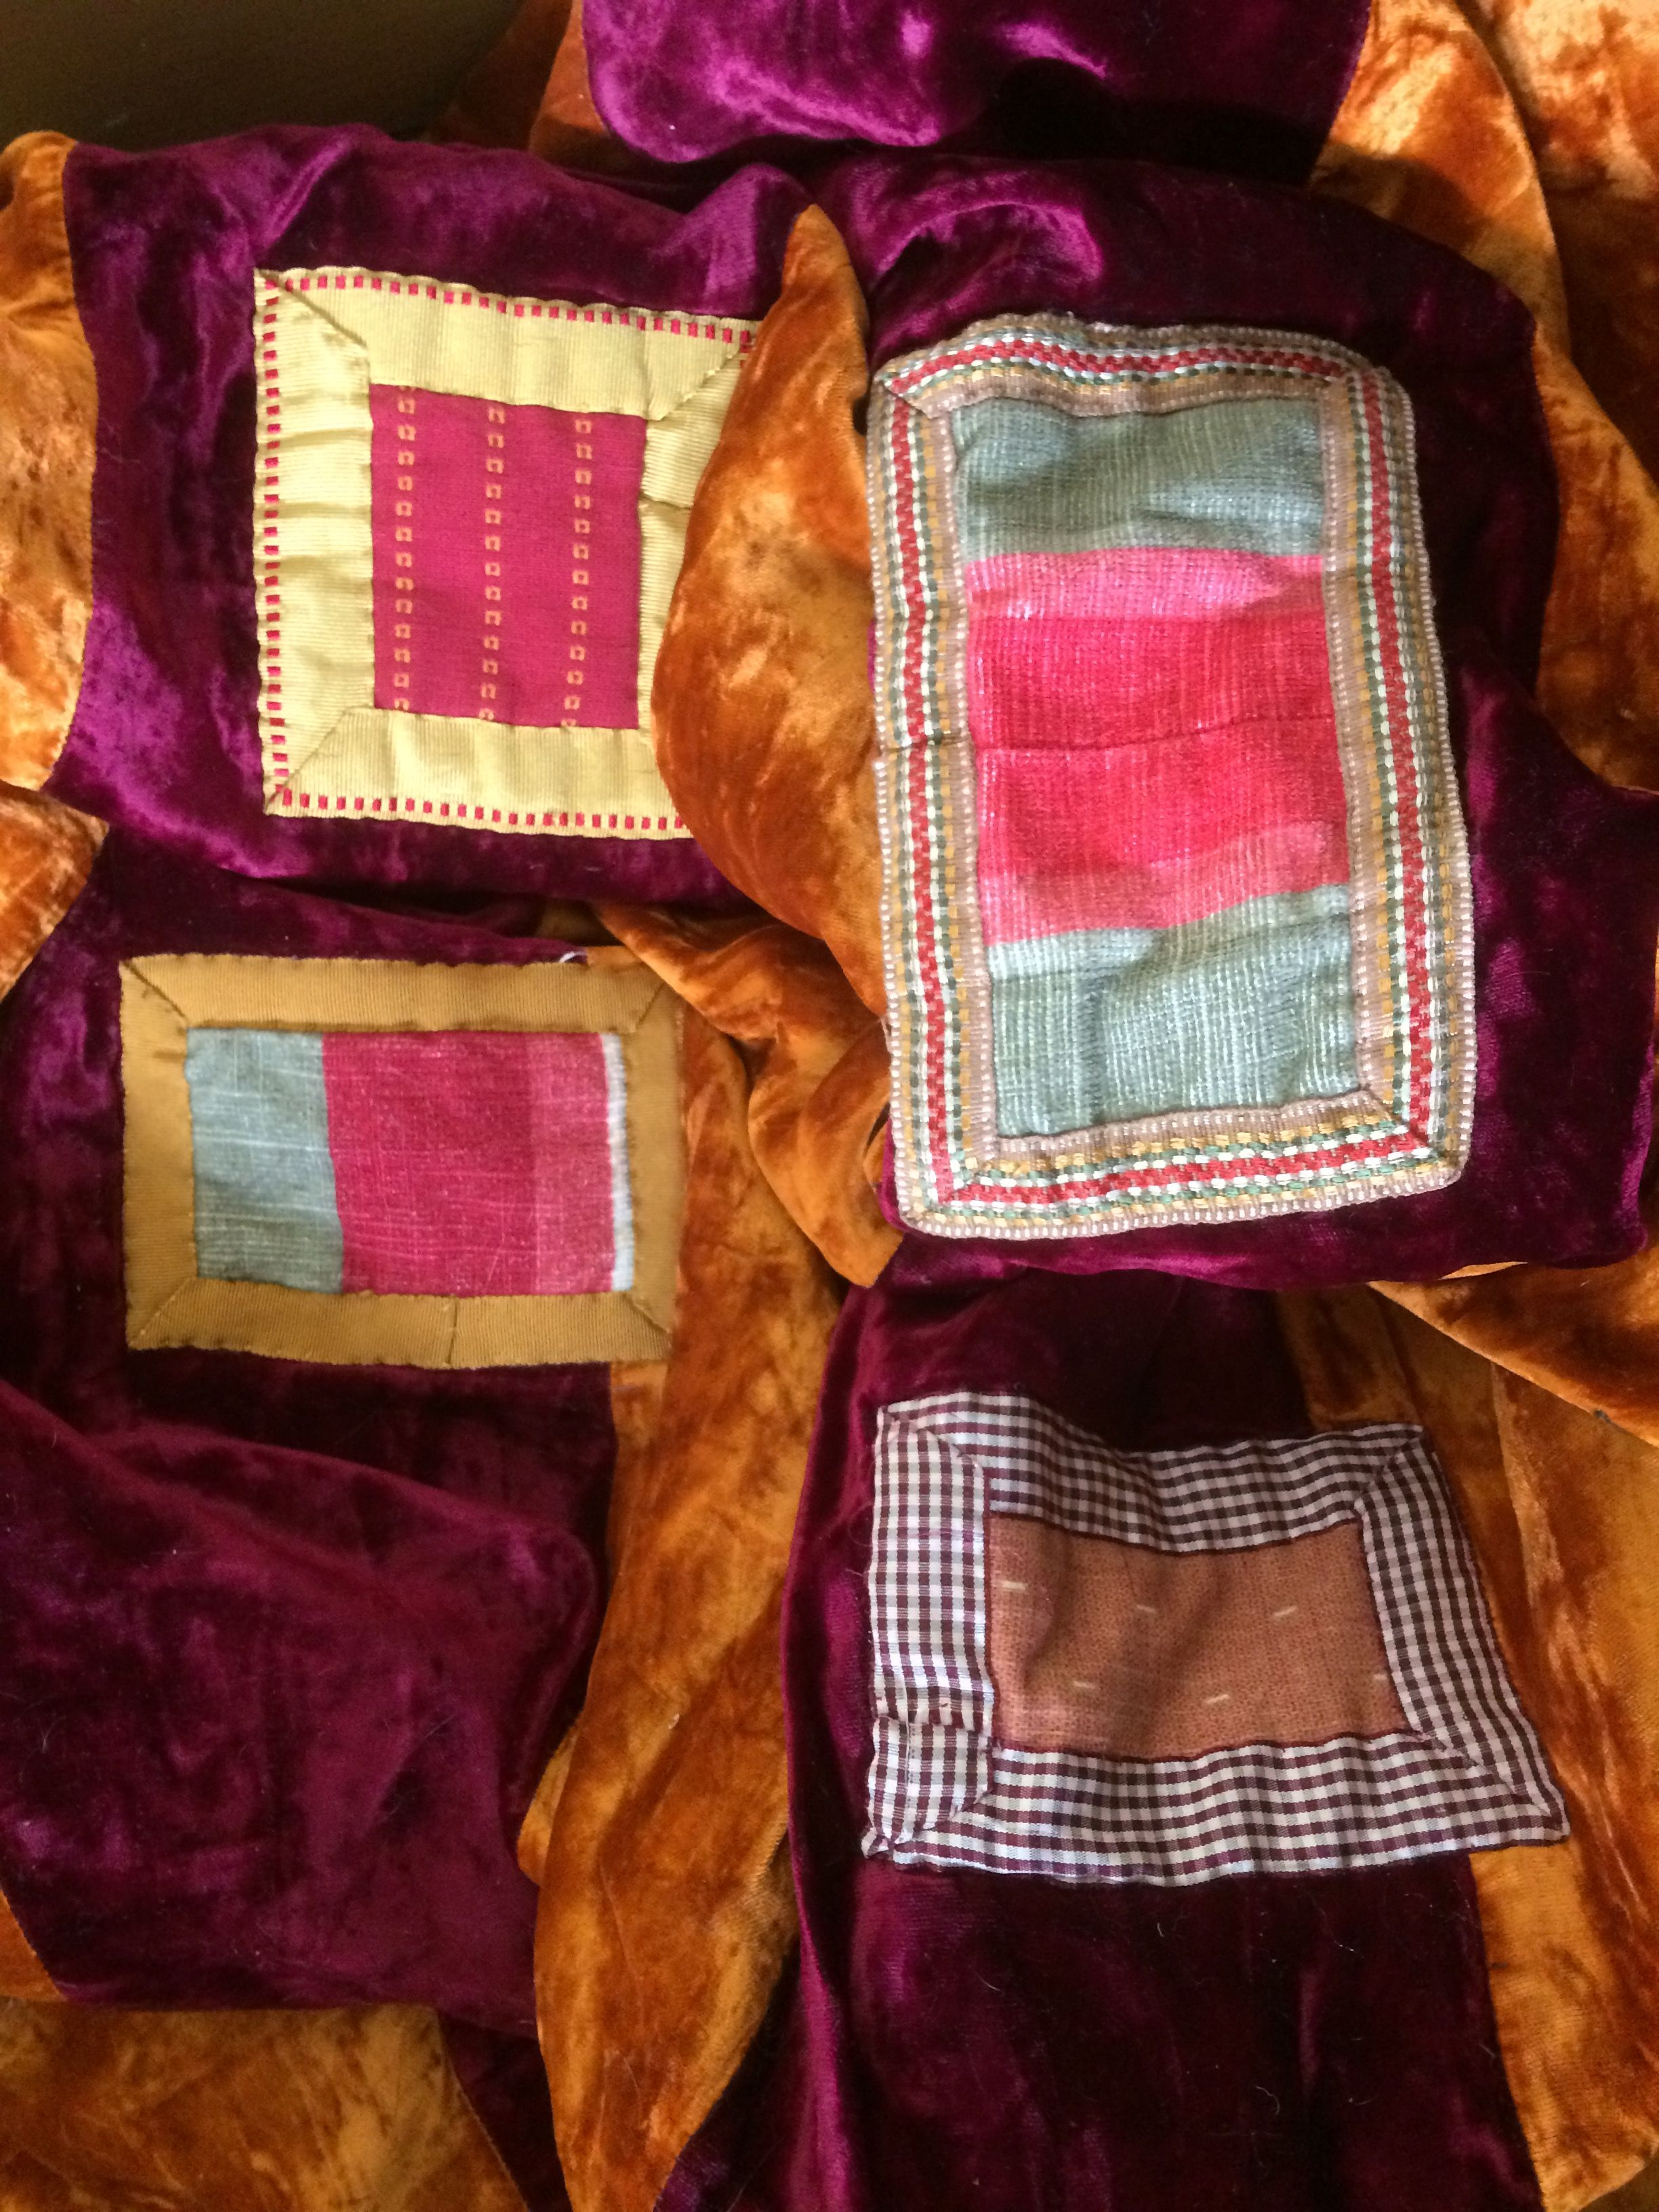 Patches on velvet patchwork quilt